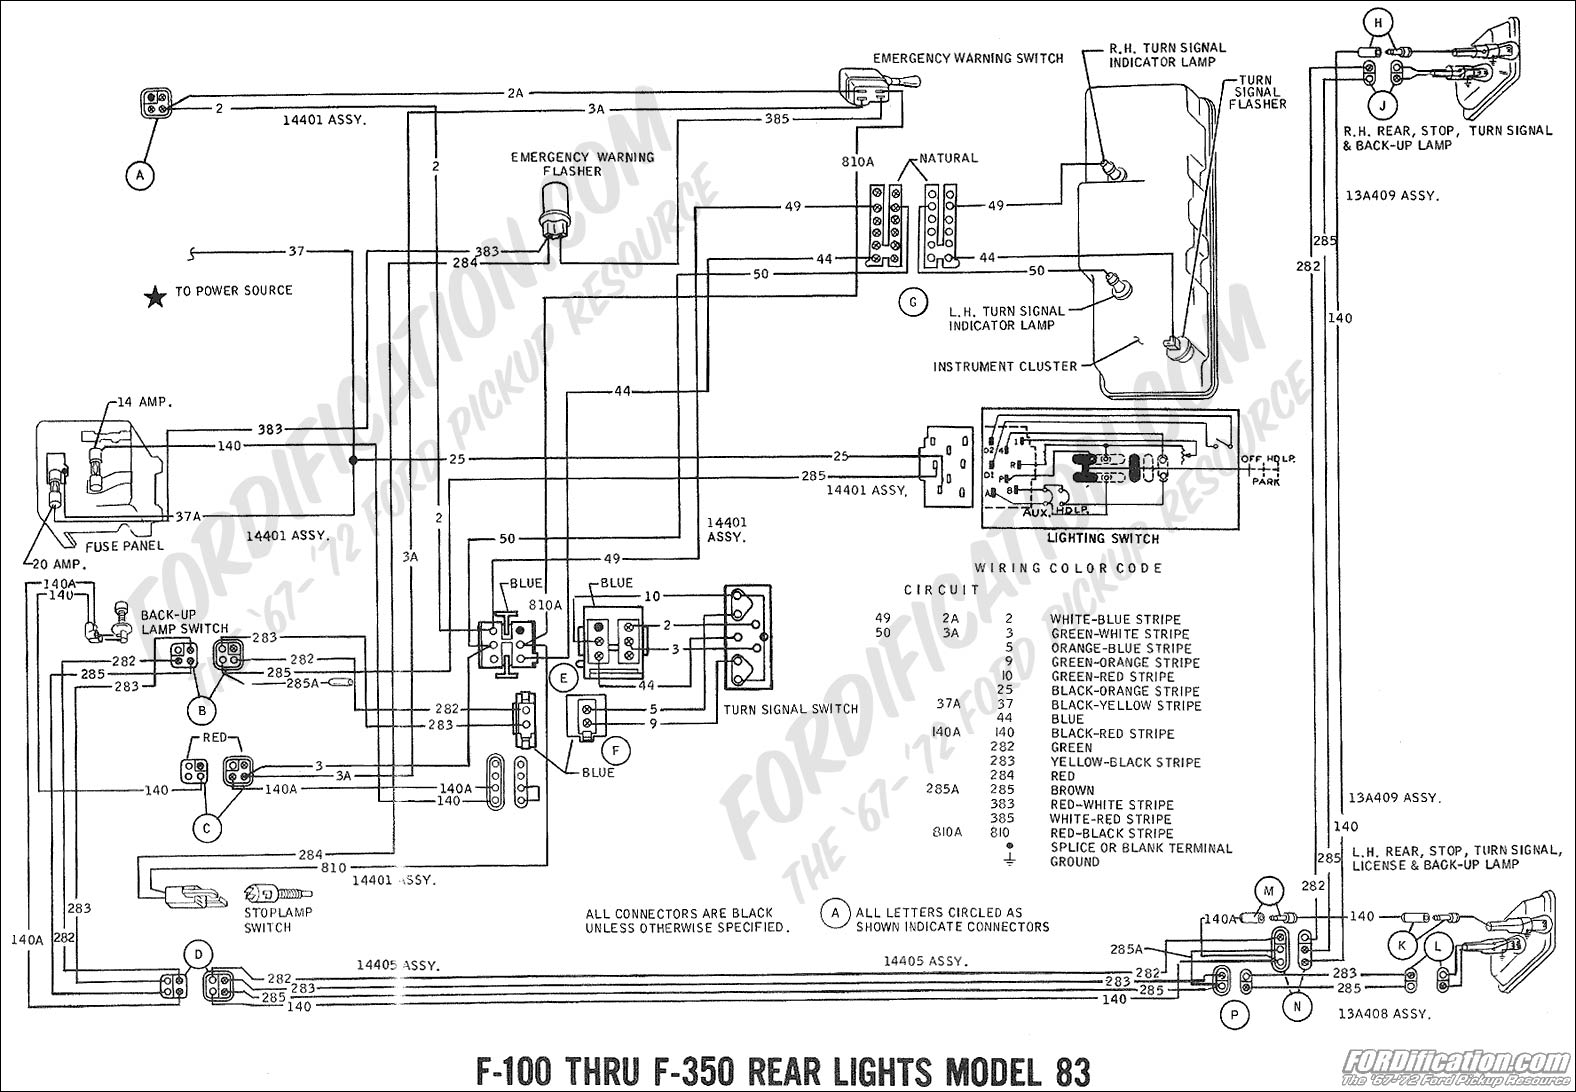 Amazing 1977 Ford Ltd Wiring Diagram Basic Electronics Wiring Diagram Wiring Cloud Cranvenetmohammedshrineorg